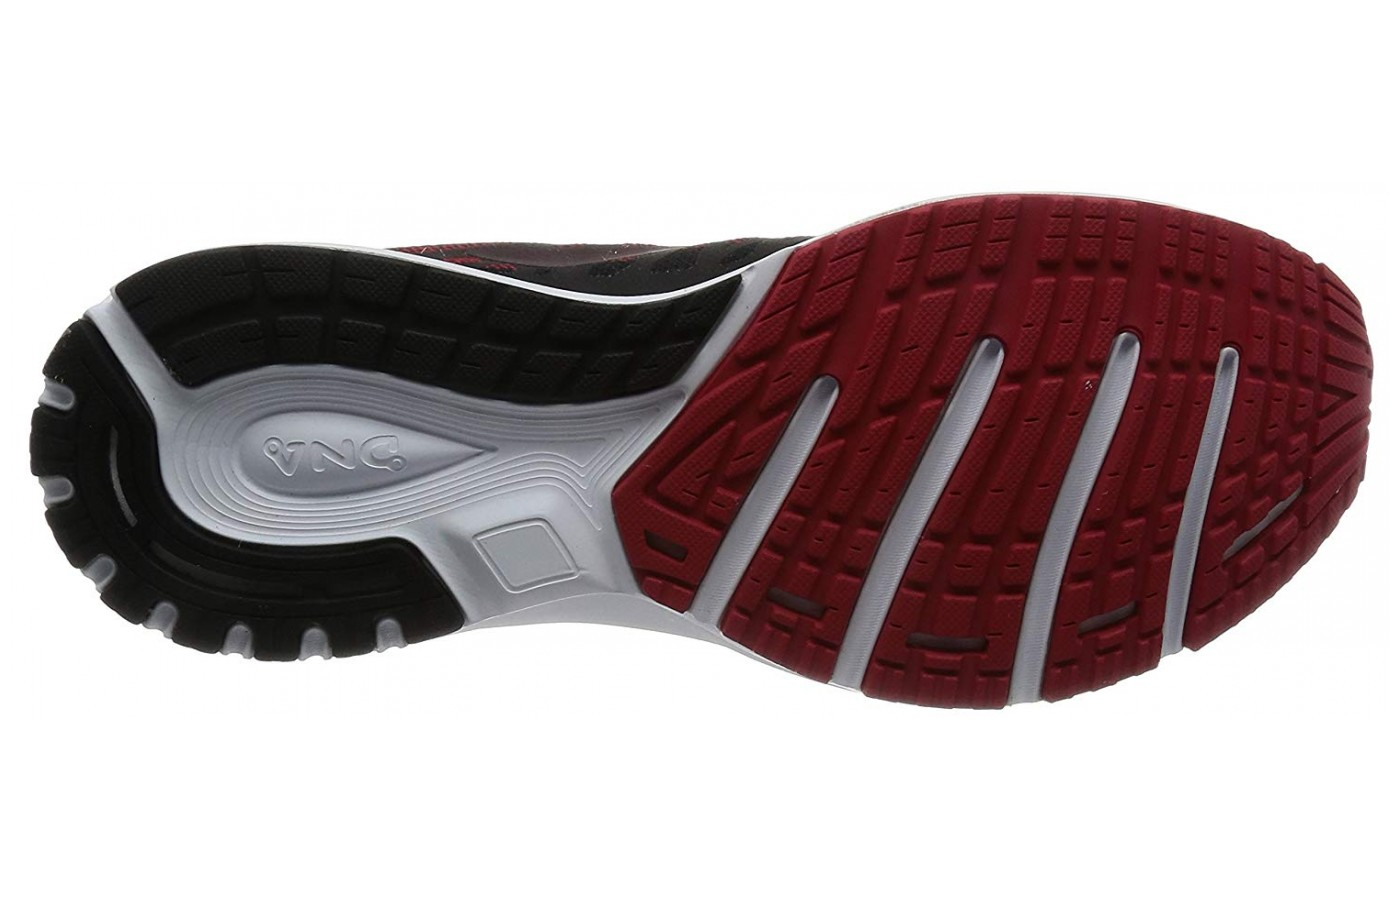 The segmented crash pad at the heel absorbs impacts and guides the motion of your foot.